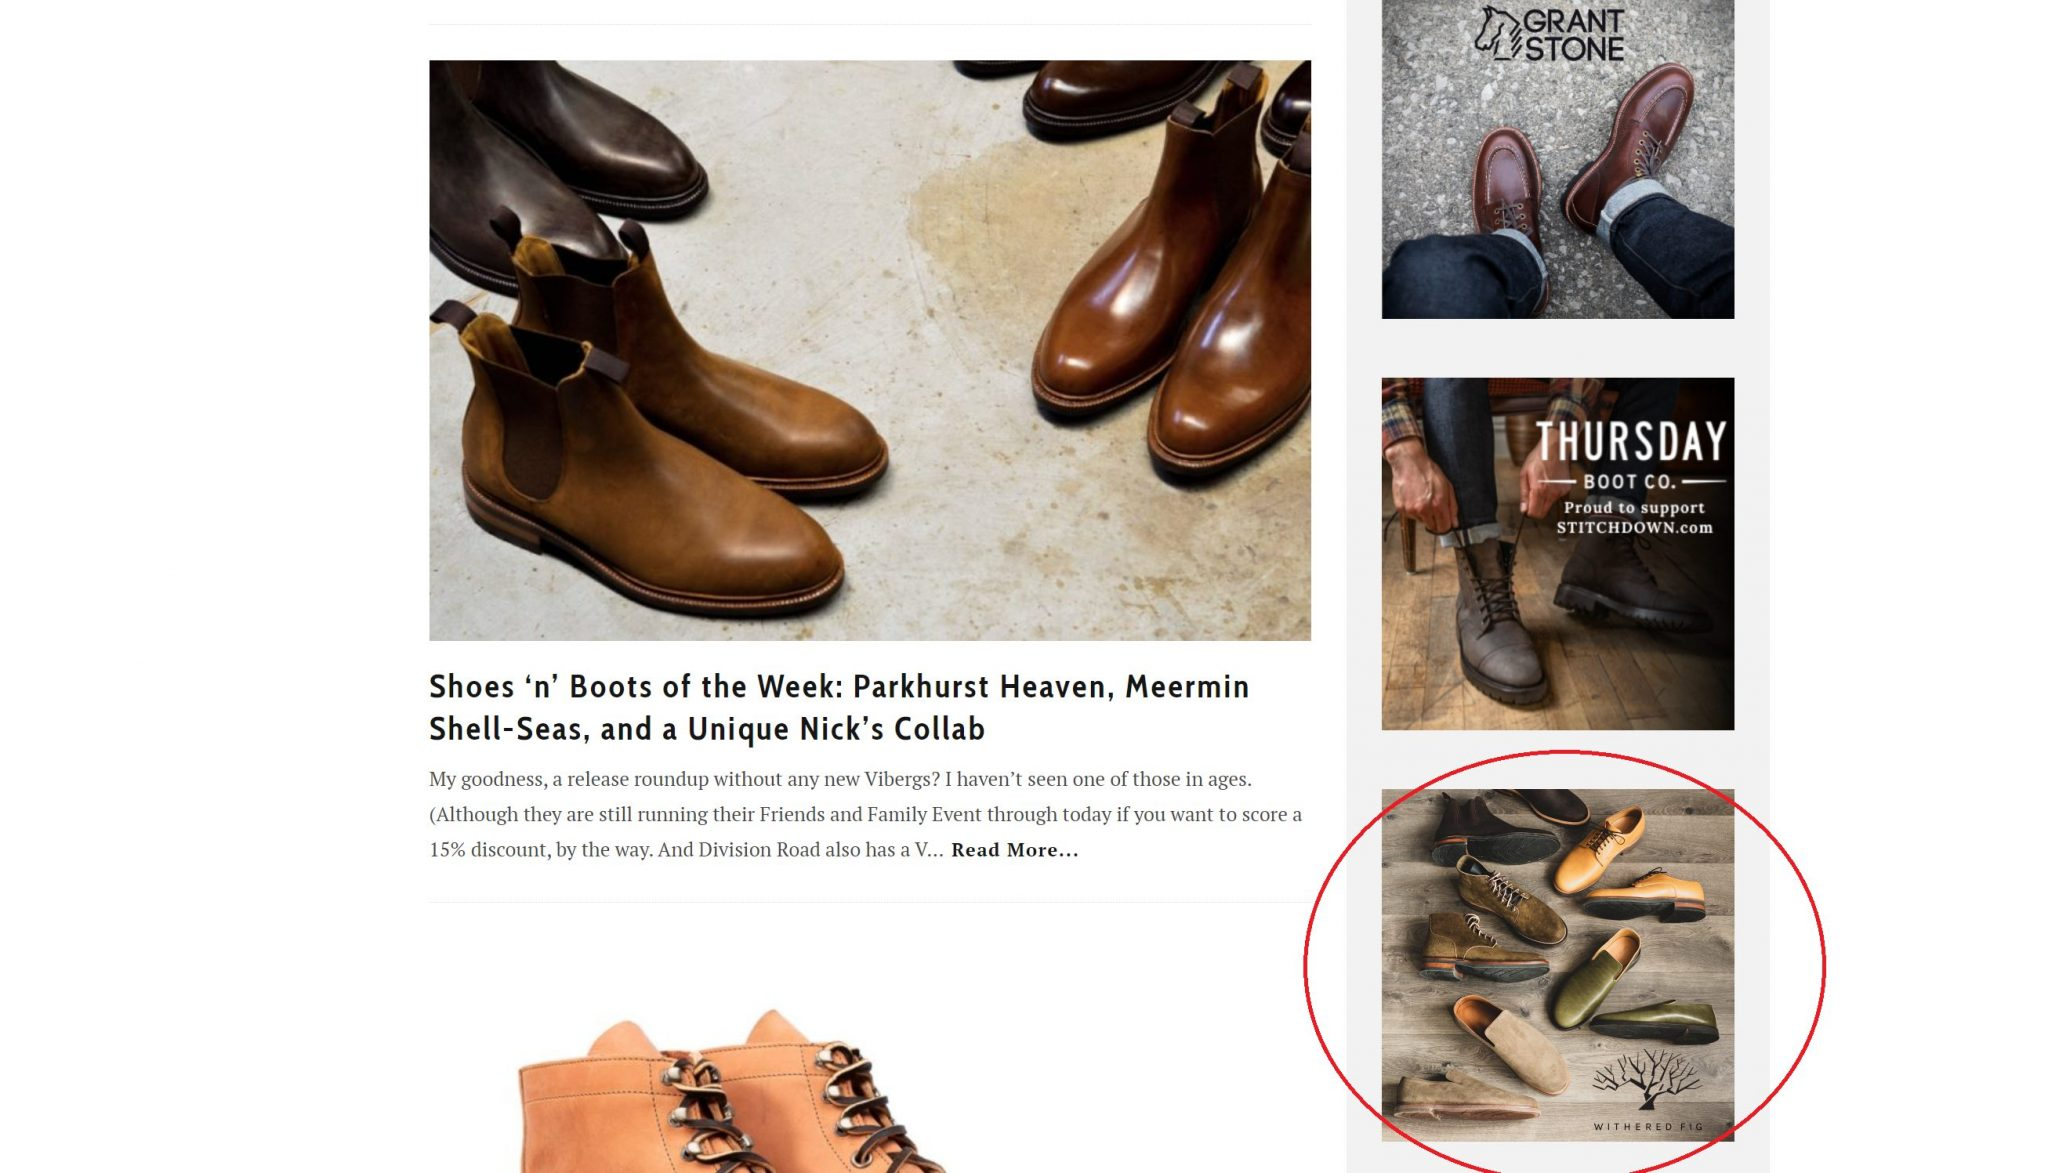 Stitchdown.com Withered Fig boots ad